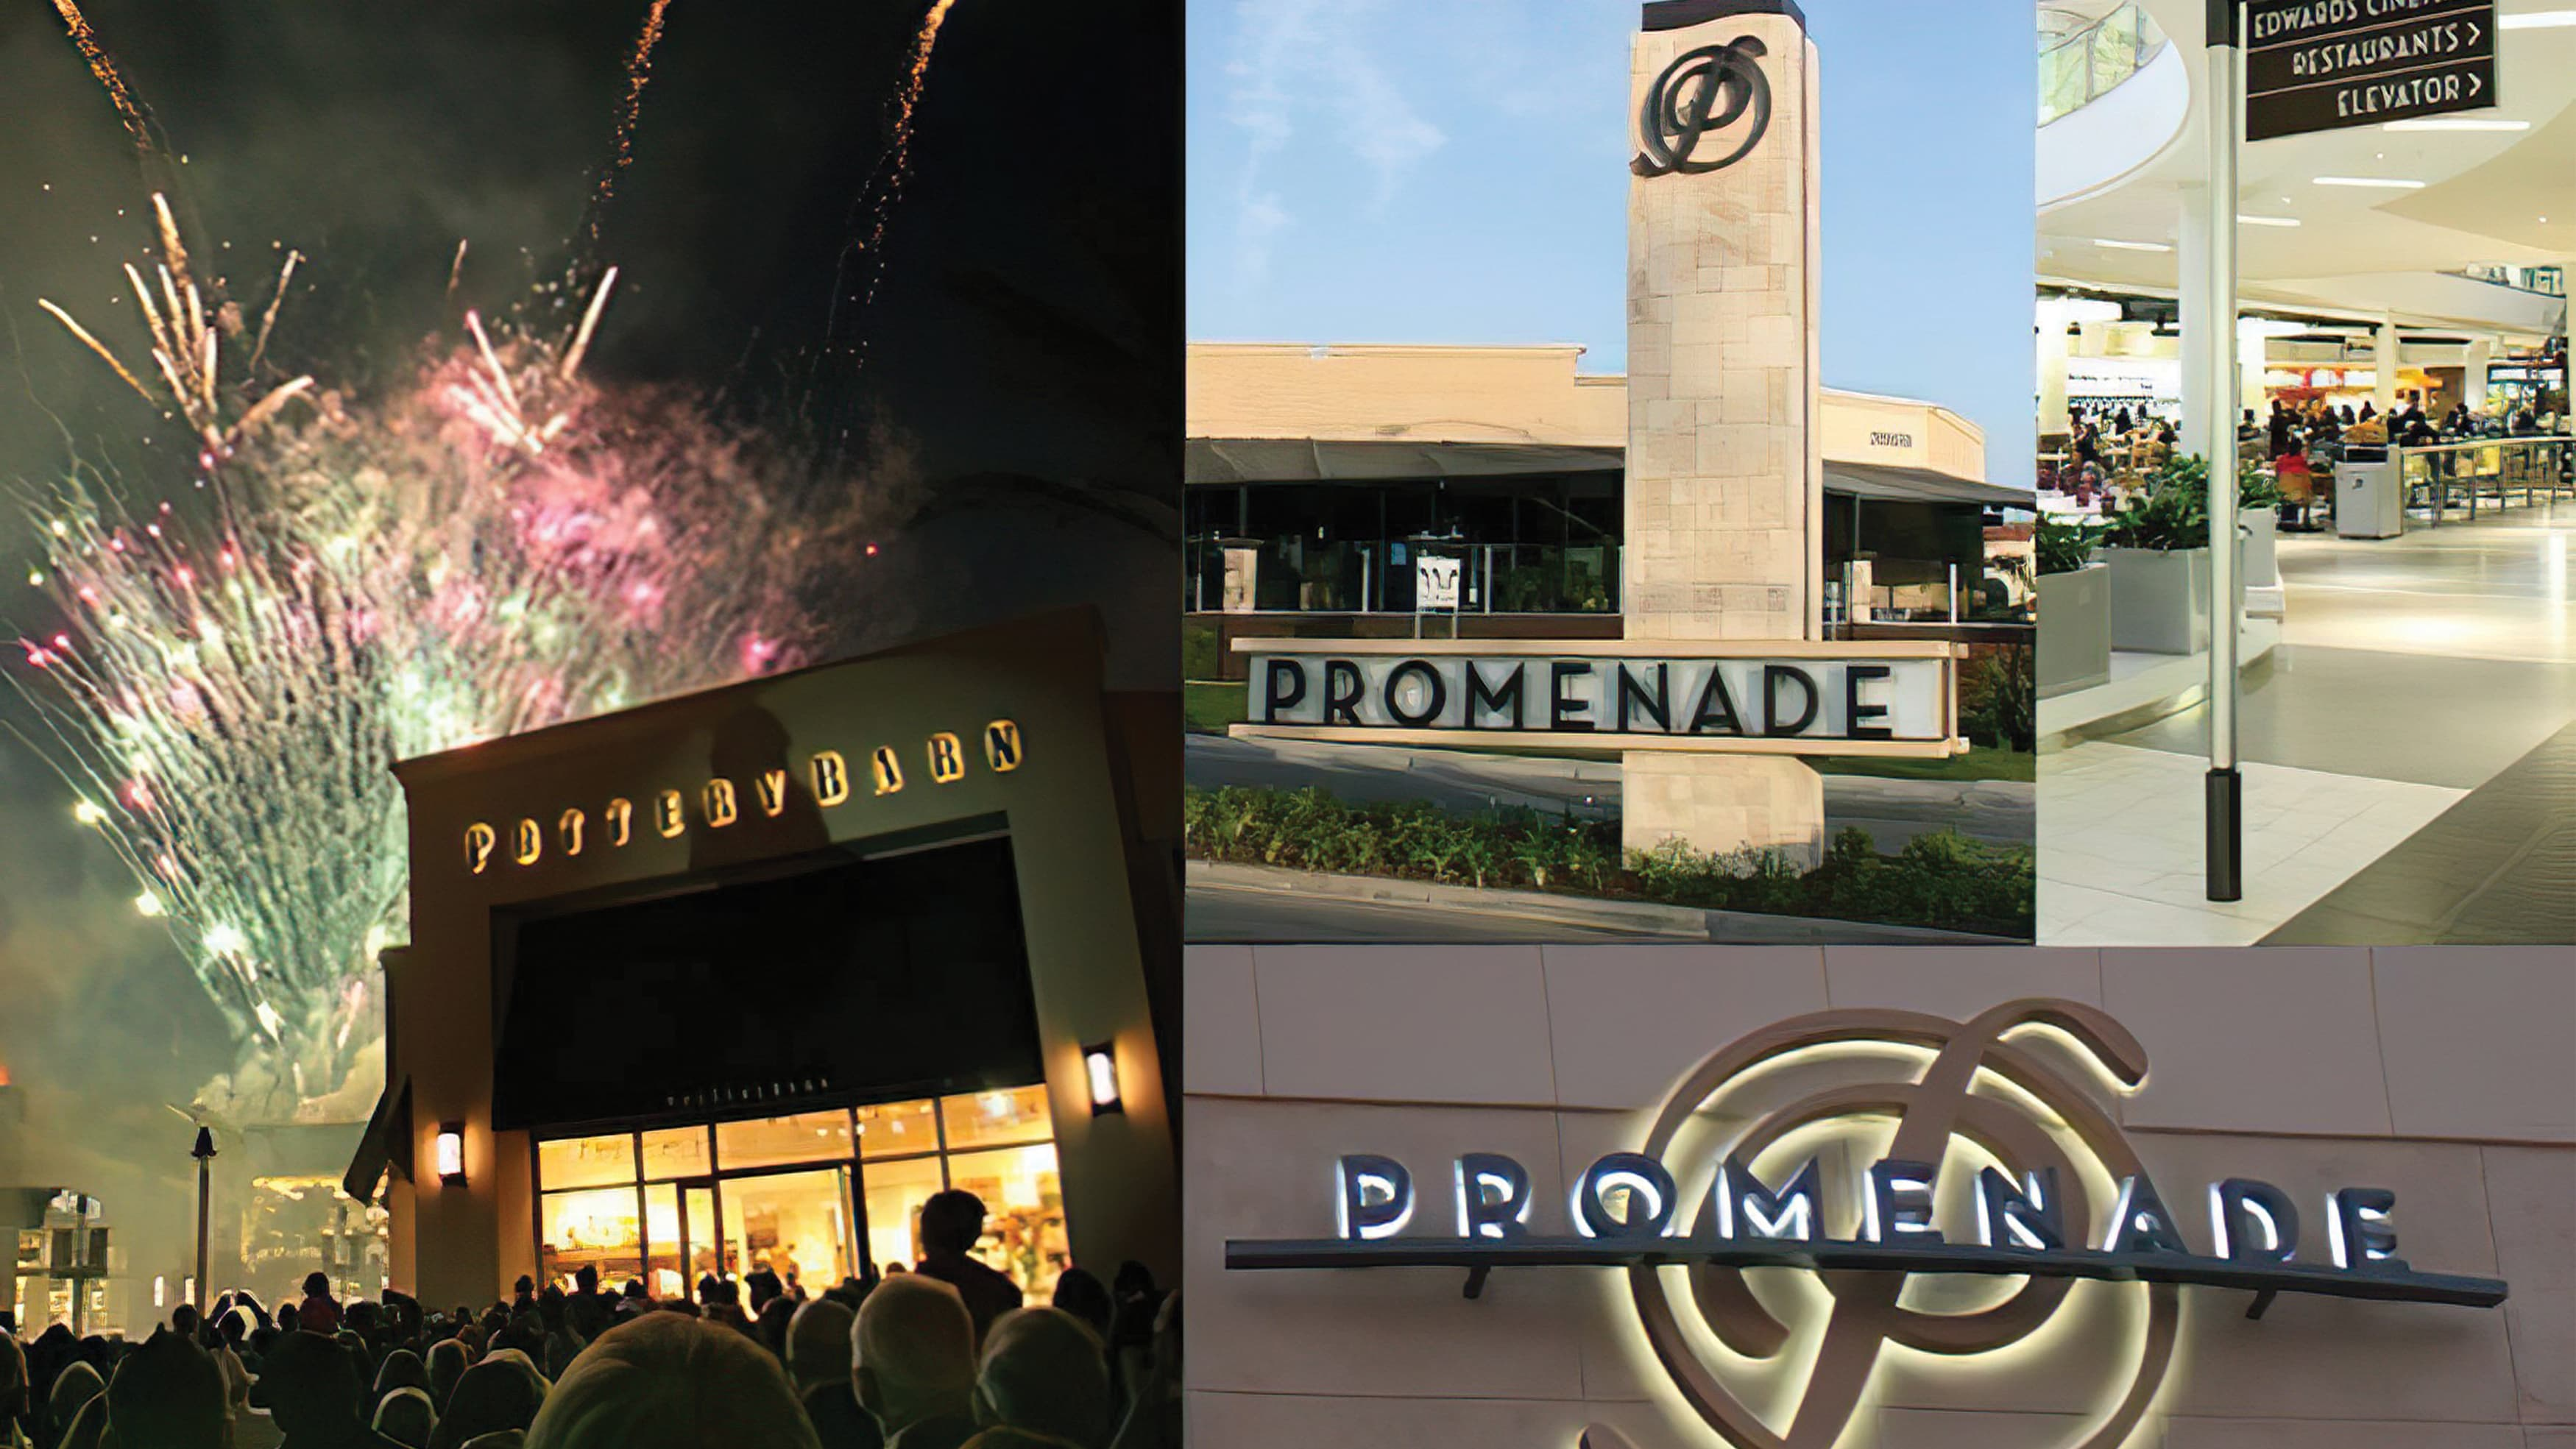 Fireworks, bands, and local wineries were part of the gala event and festivities at the grand re-opening of the Promenade Temecula renovation and expansion